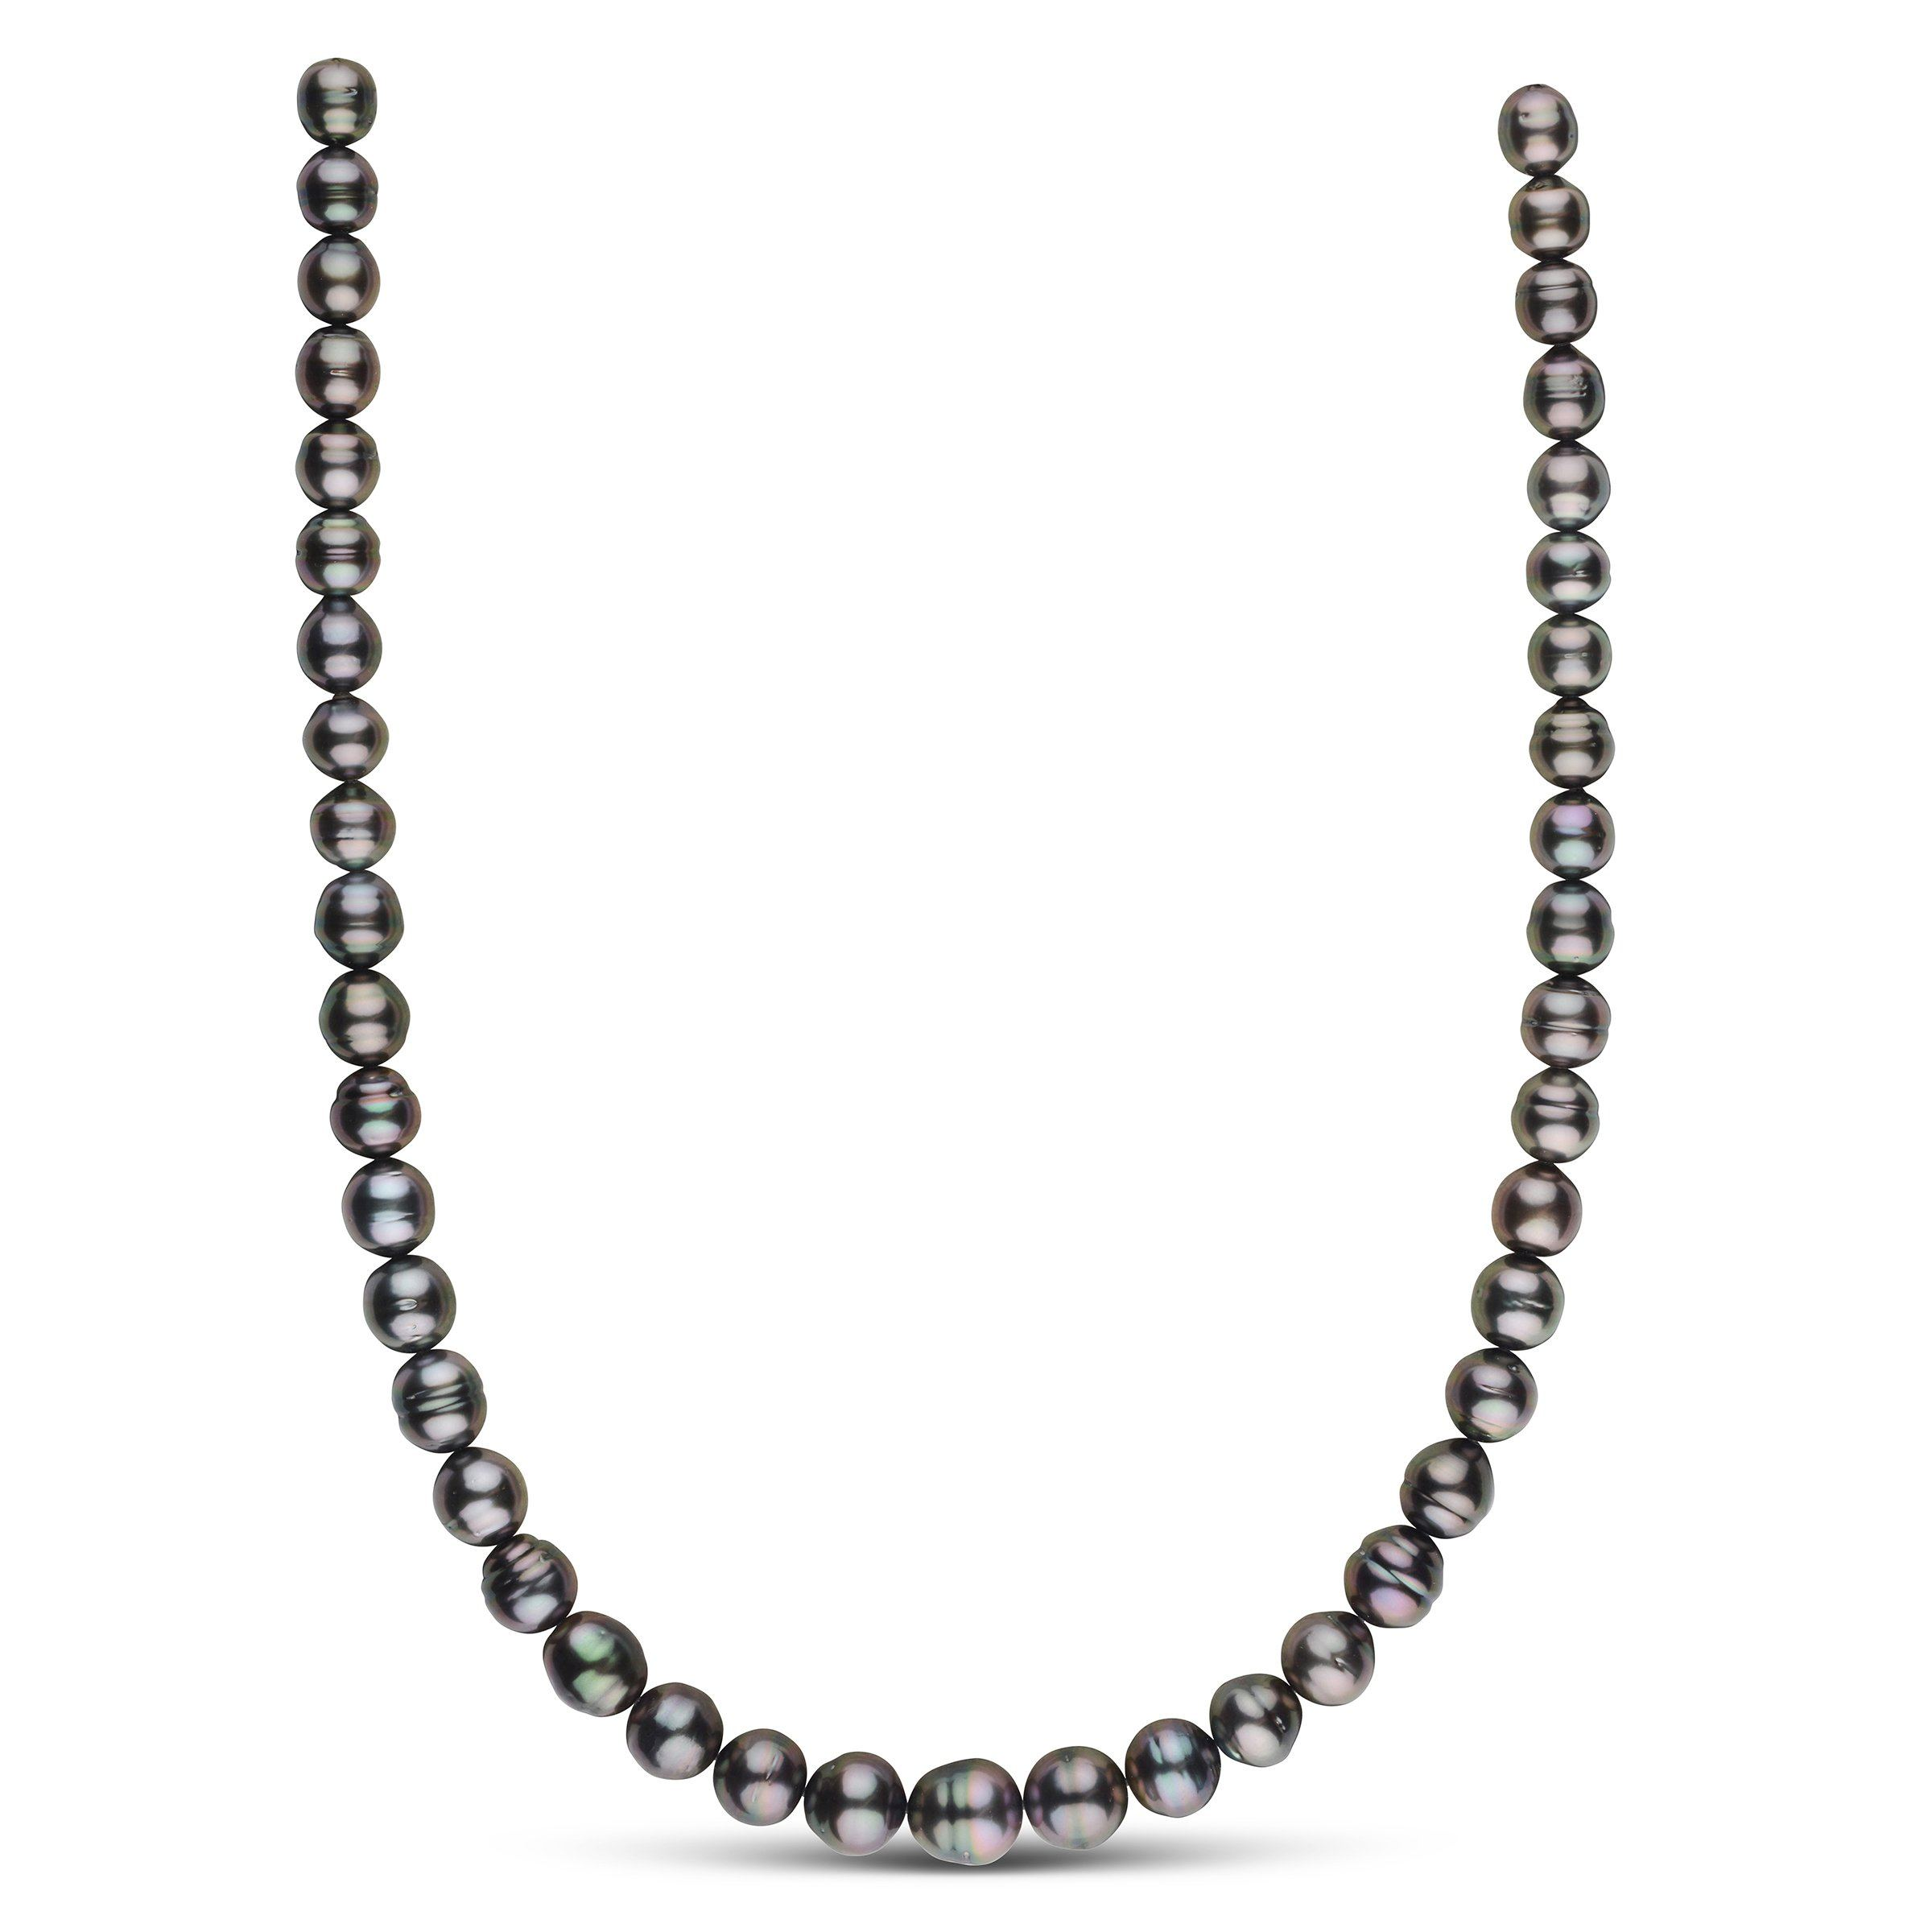 8.0-10.6 mm AA+/AAA Tahitian Baroque Pearl Necklace